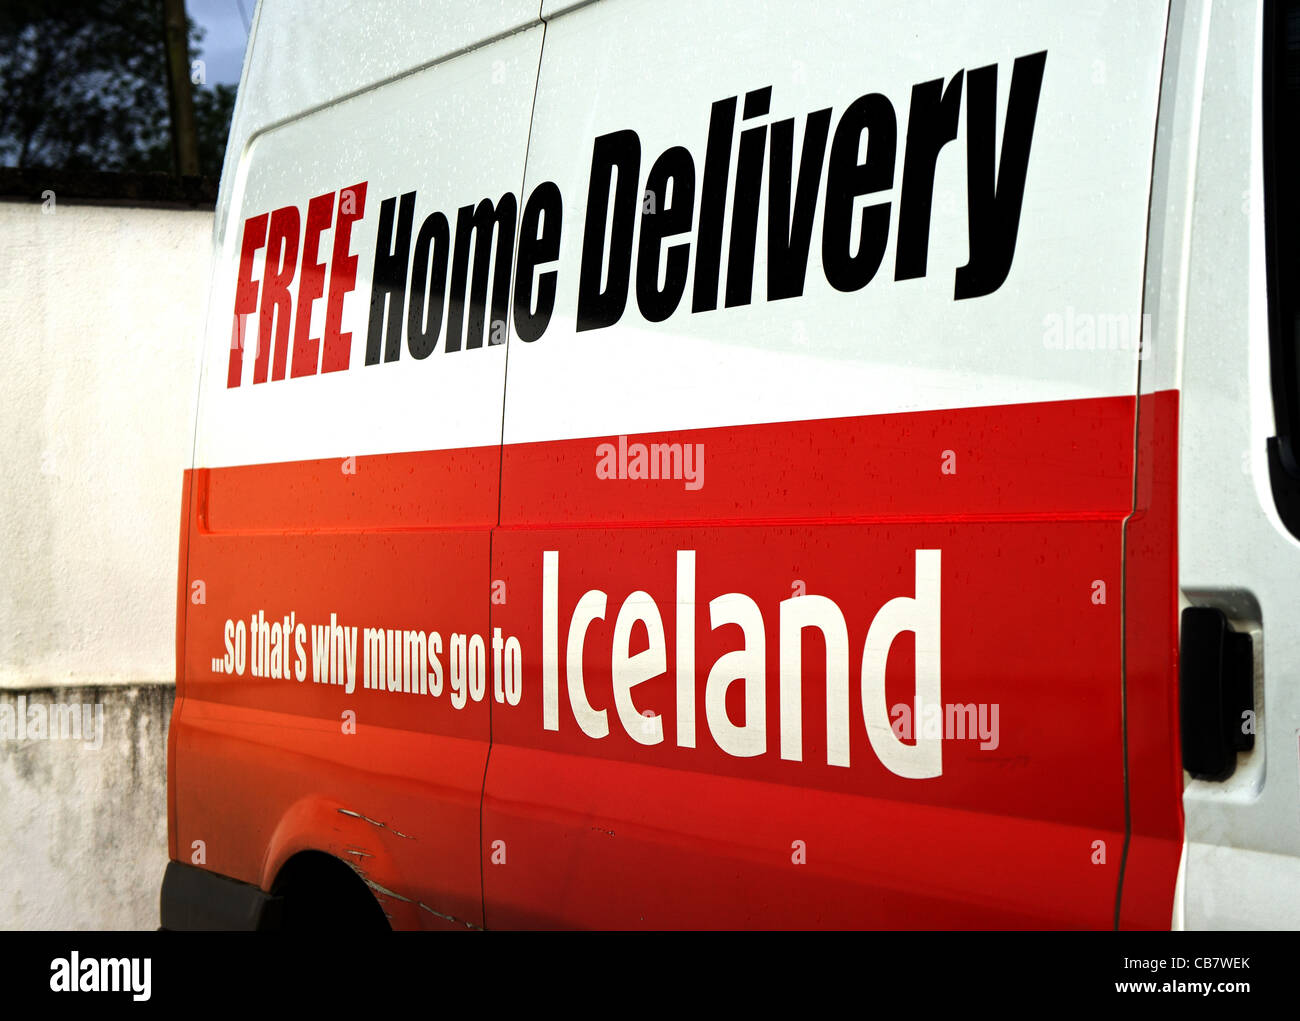 An Iceland home delivery van, UK - Stock Image